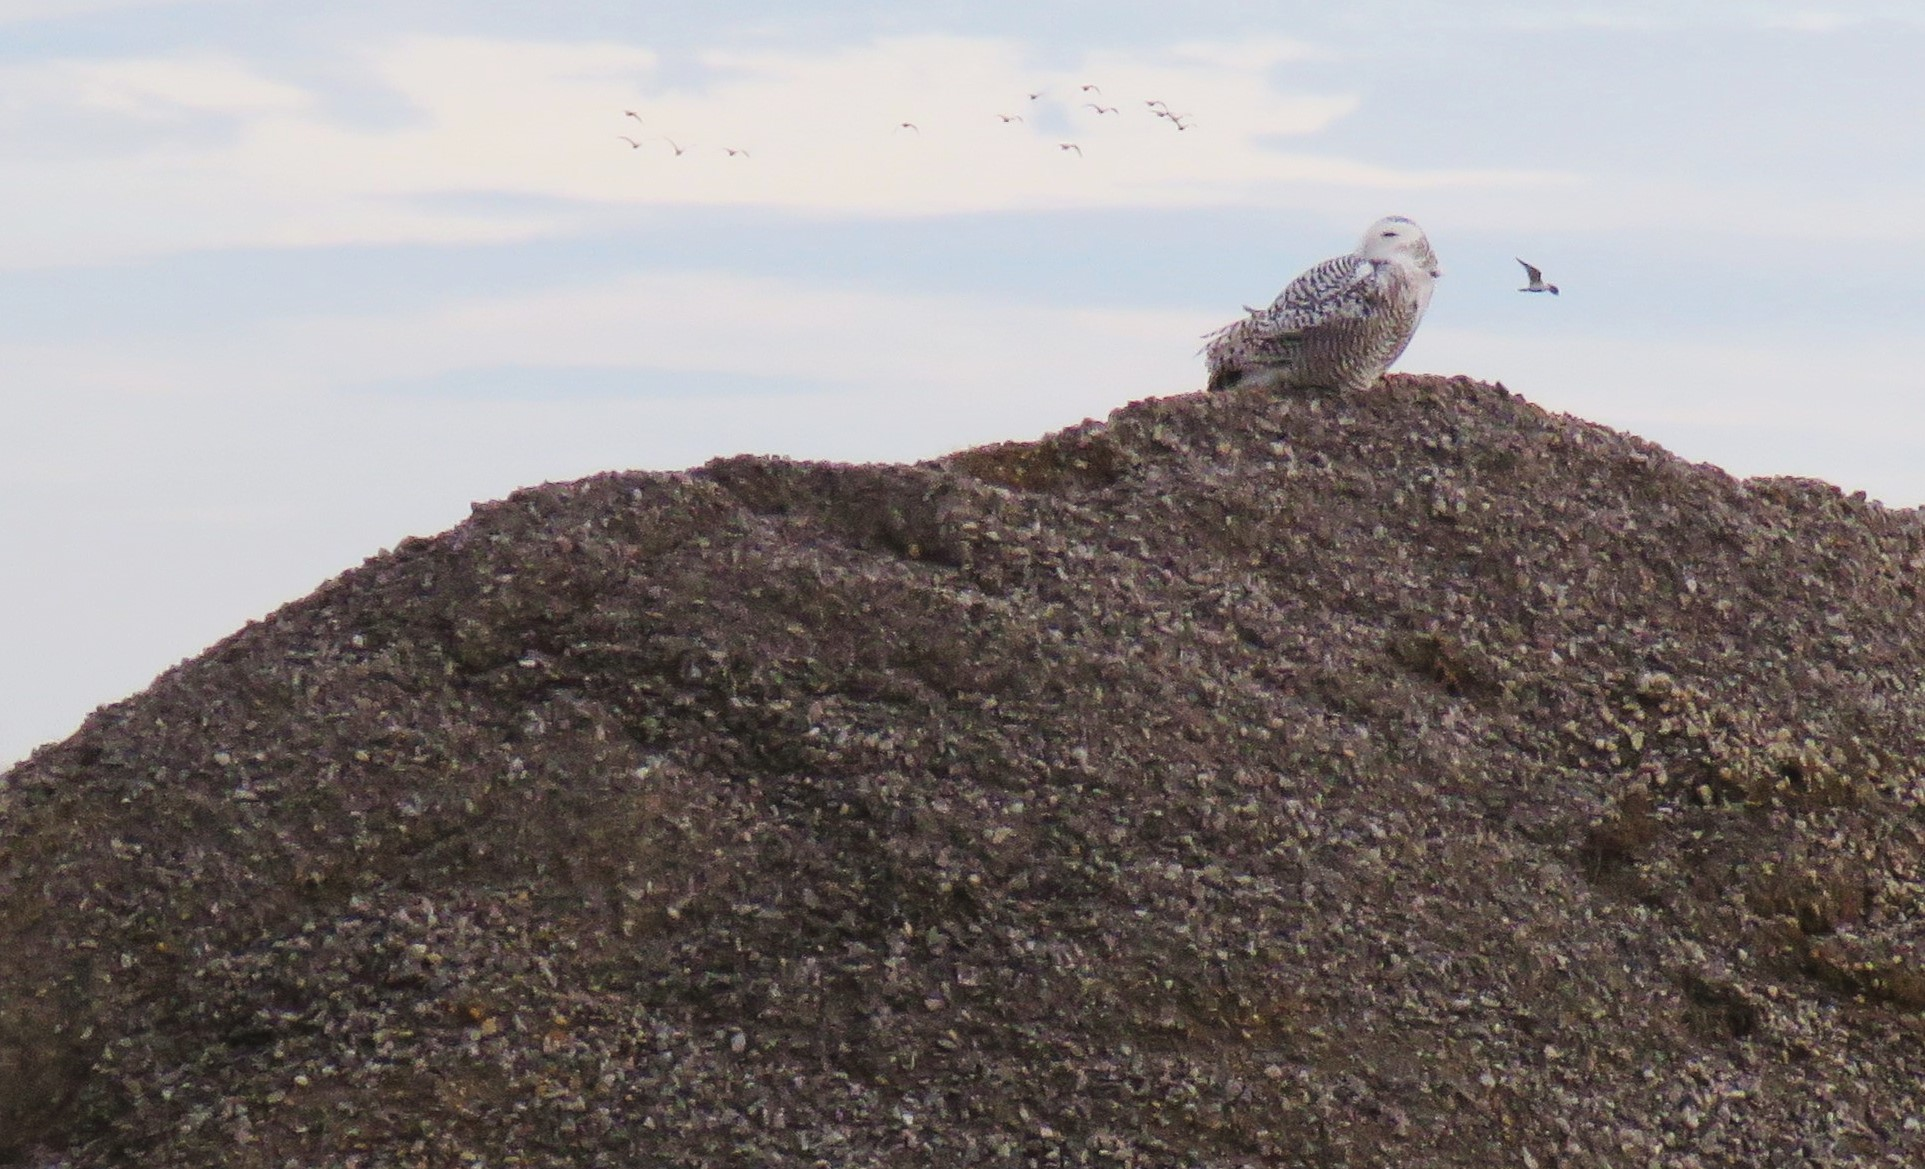 snowy owl on gravel pile